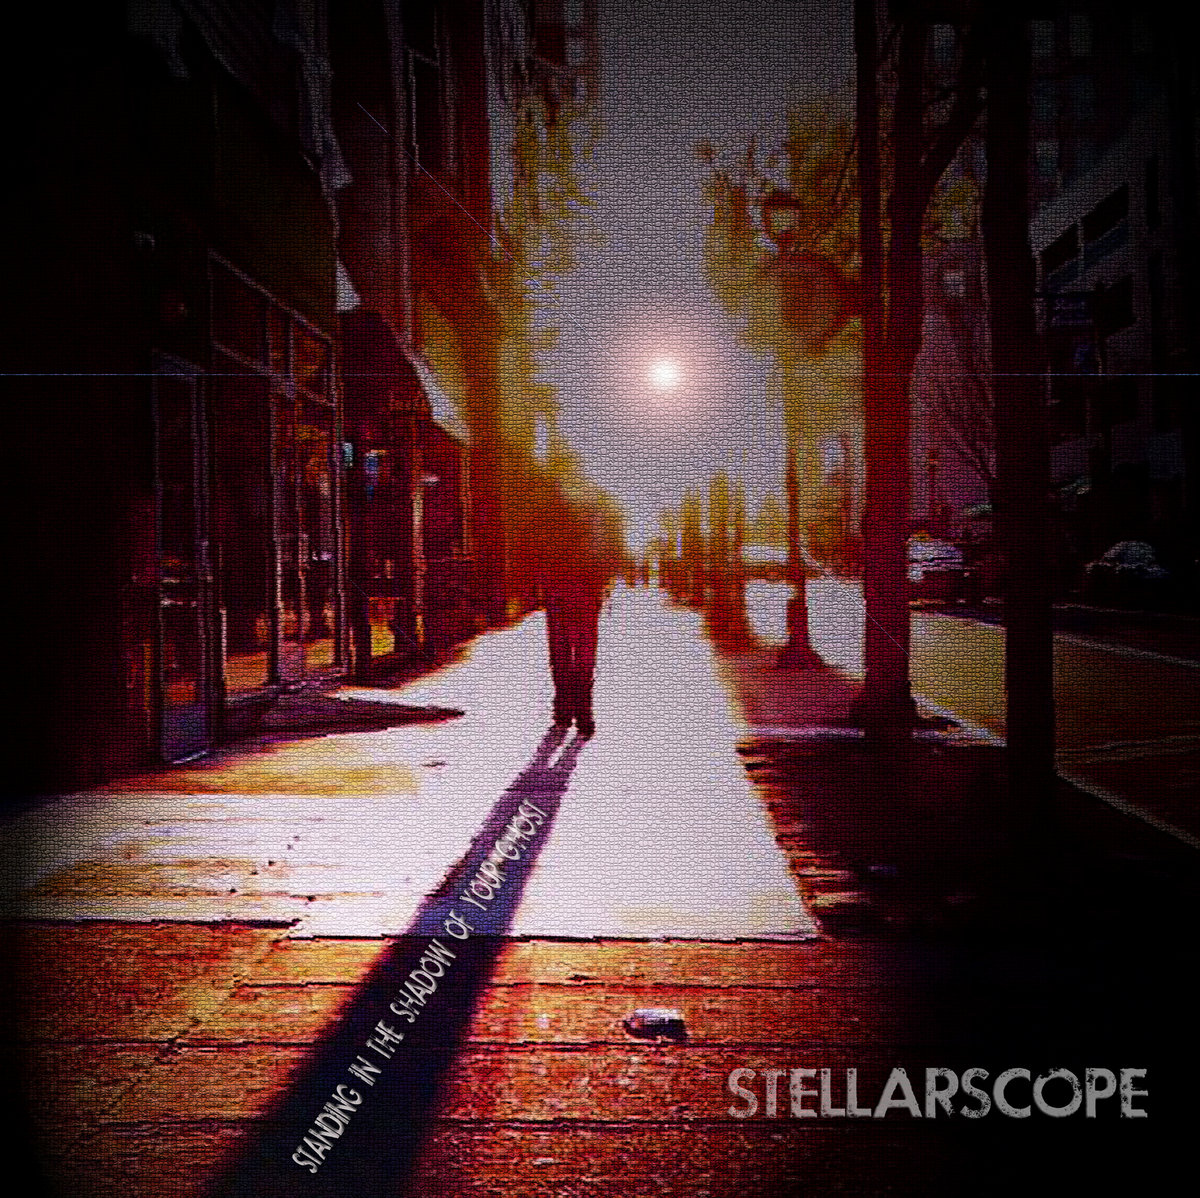 """Stellarscope - """"Standing In The Shadow Of Your Ghost"""""""